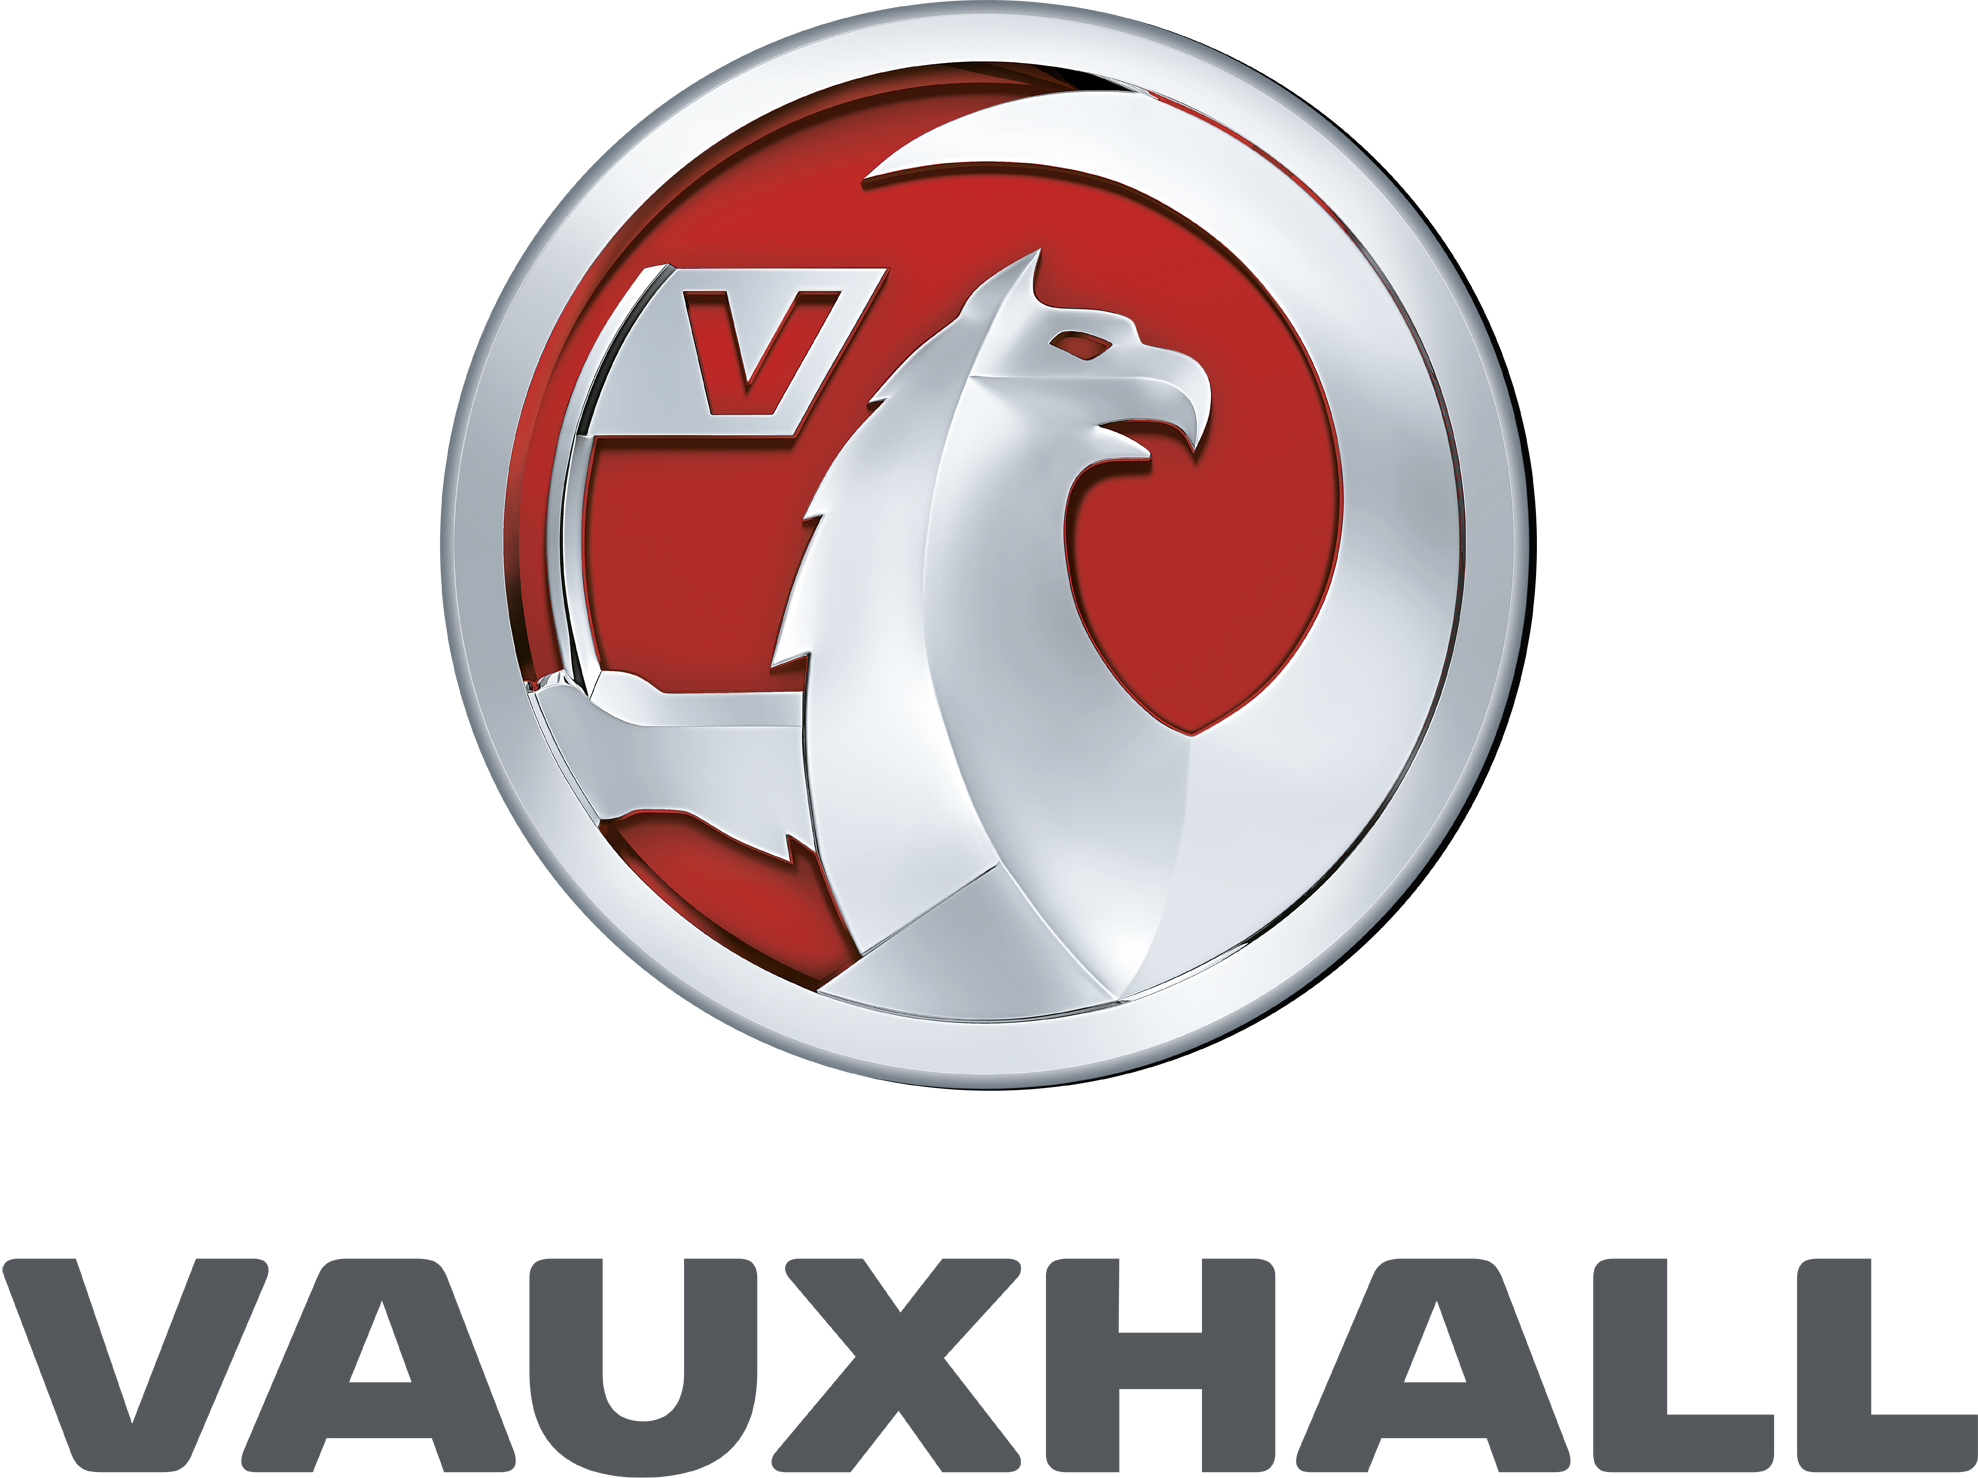 1978x1478 - Vauxhall Wallpapers 32